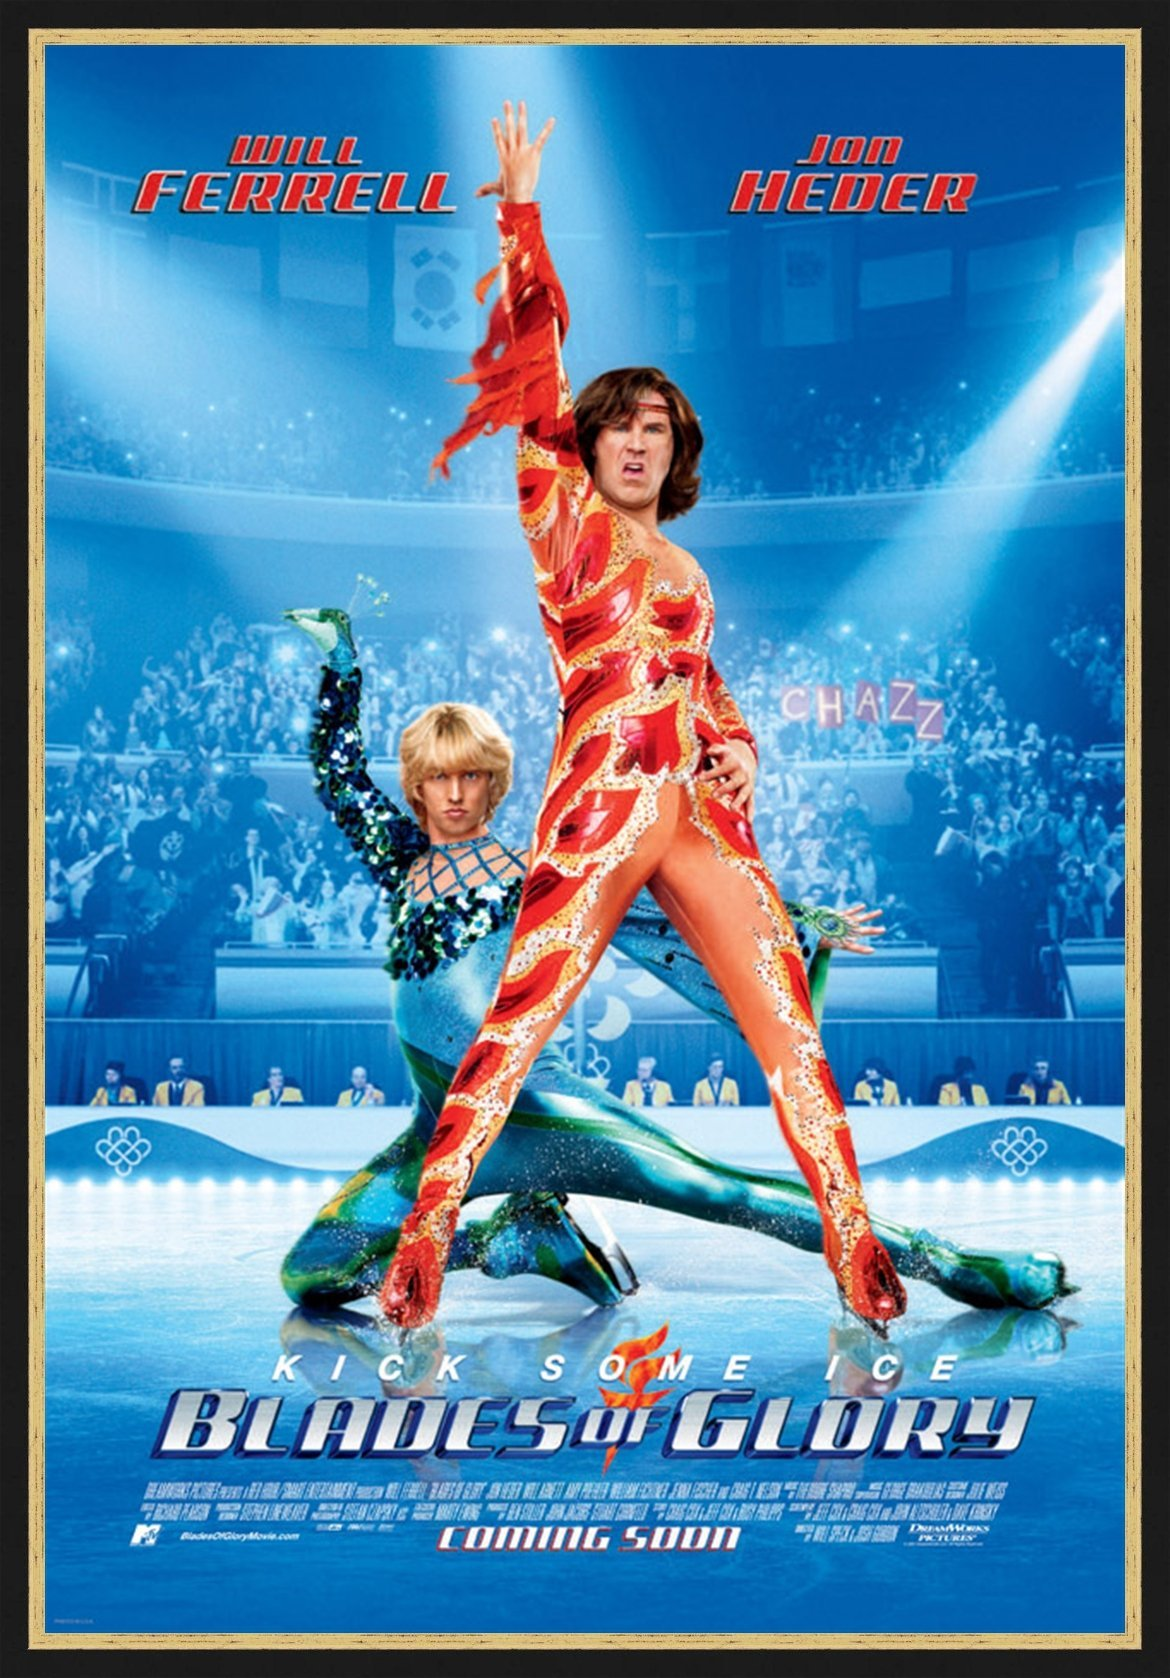 An original movie poster for the film Blades of Glory